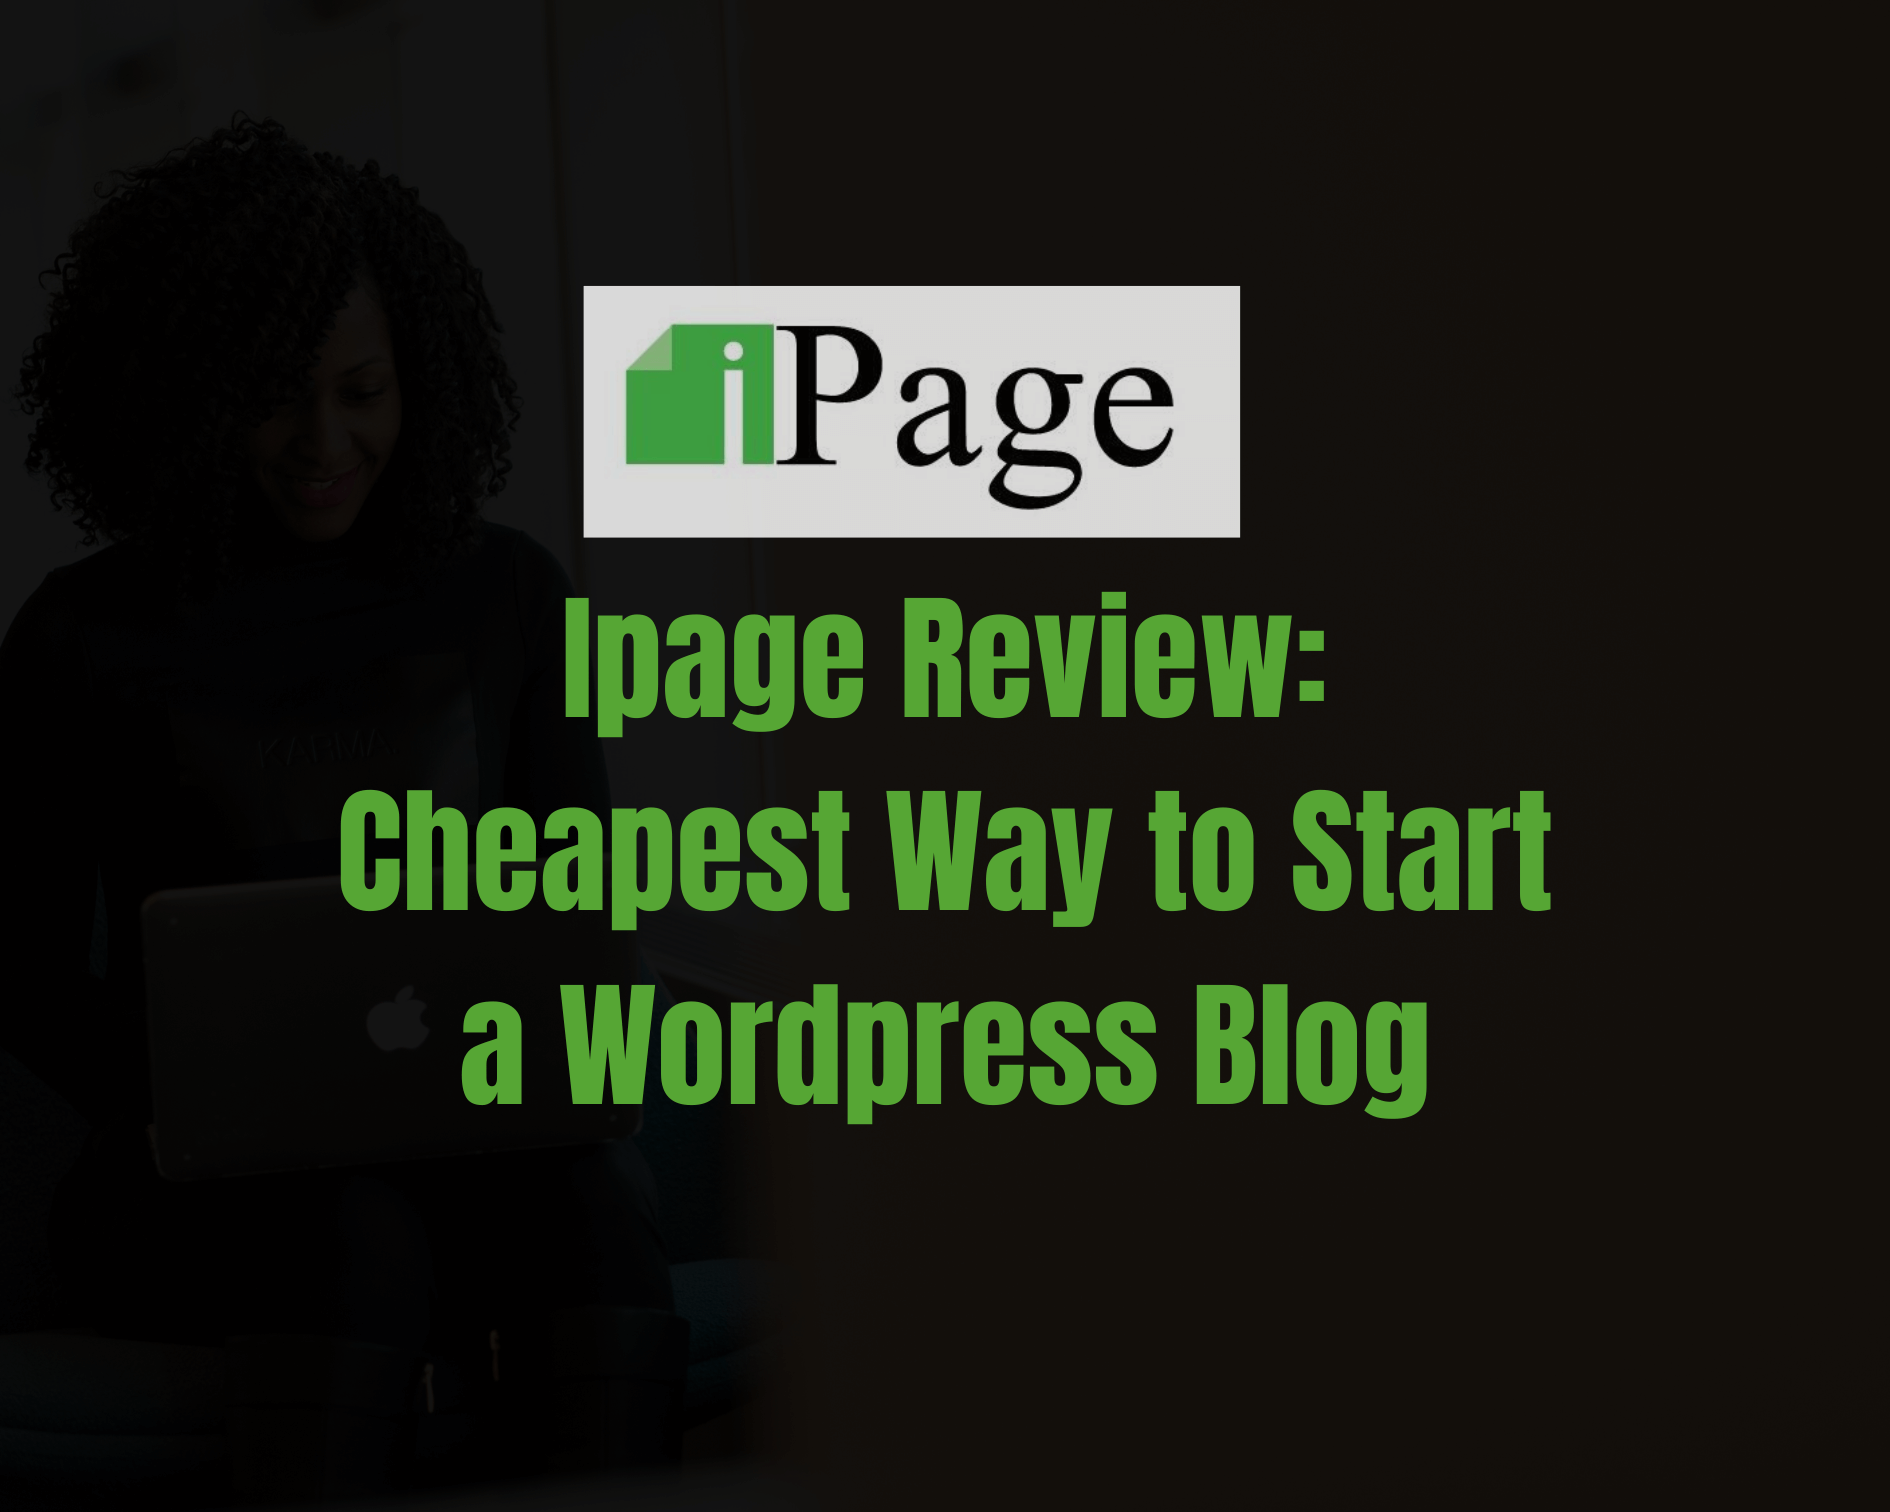 Ipage Web Hosting Review: Cheapest Way to Start a WordPress Blog